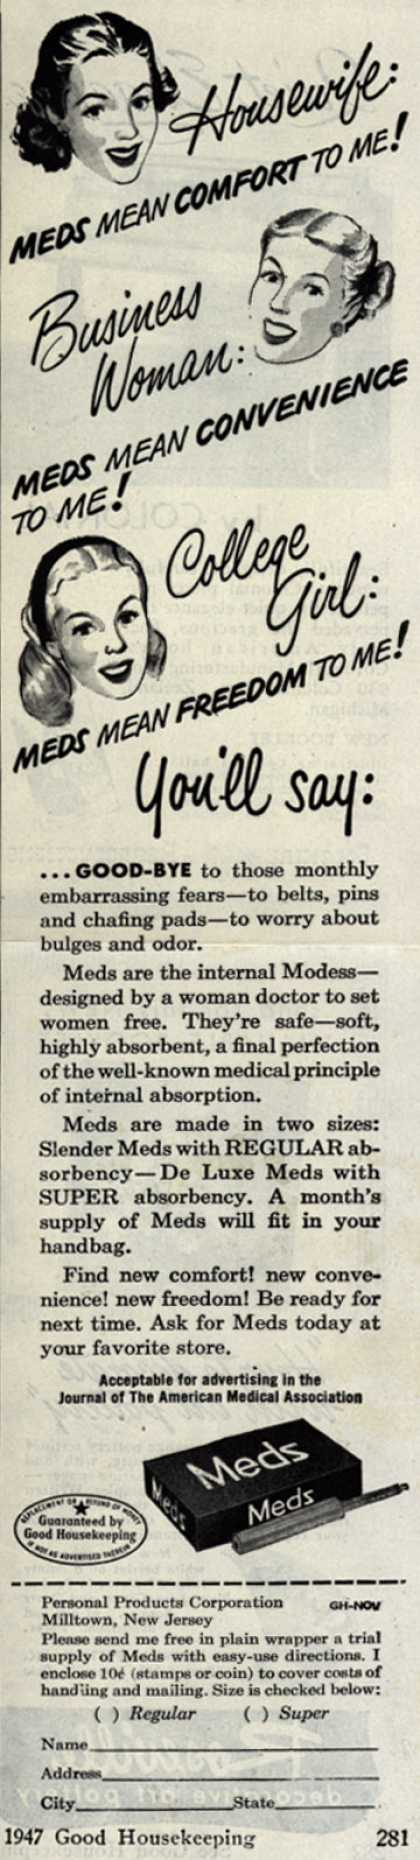 Personal Products Corporation's Meds Tampons – Housewife: Meds mean comfort to me! Business Woman: Meds mean convenience to me! College Girl: Meds mean freedom to me (1947)